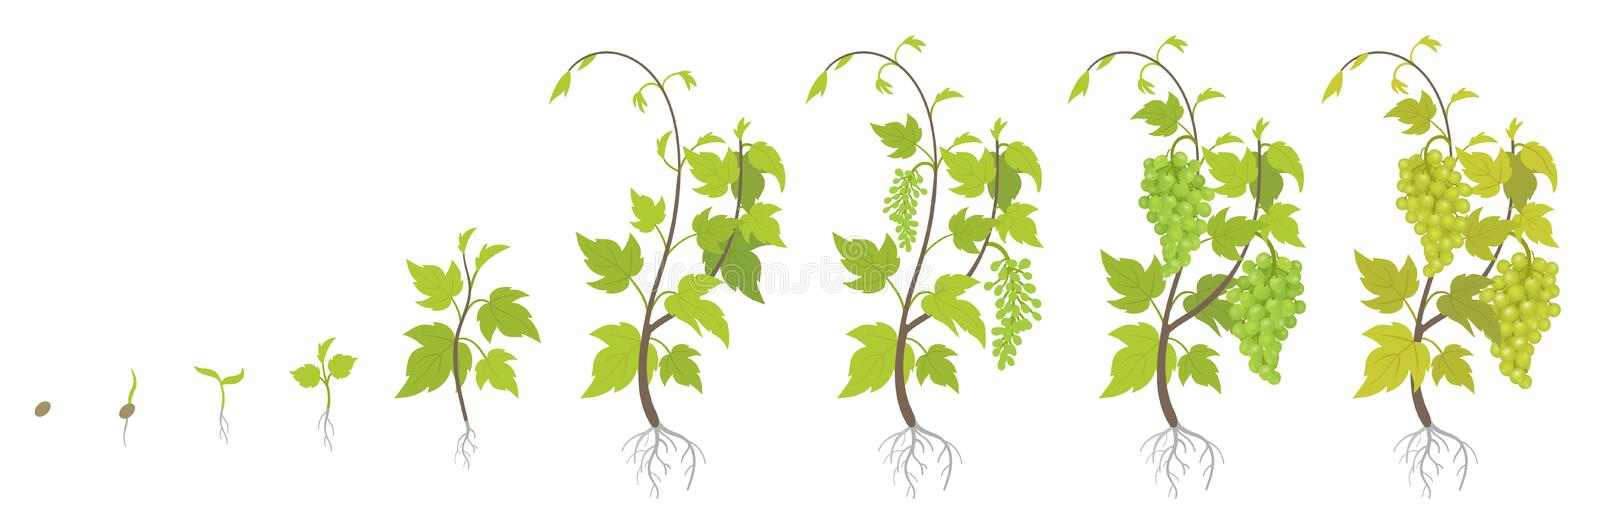 Planting growth stages of grapes plant. Vineyard planting increase phases. Vitis vinifera harvested. Ripening period infographics. Planting growth stages of royalty free illustration